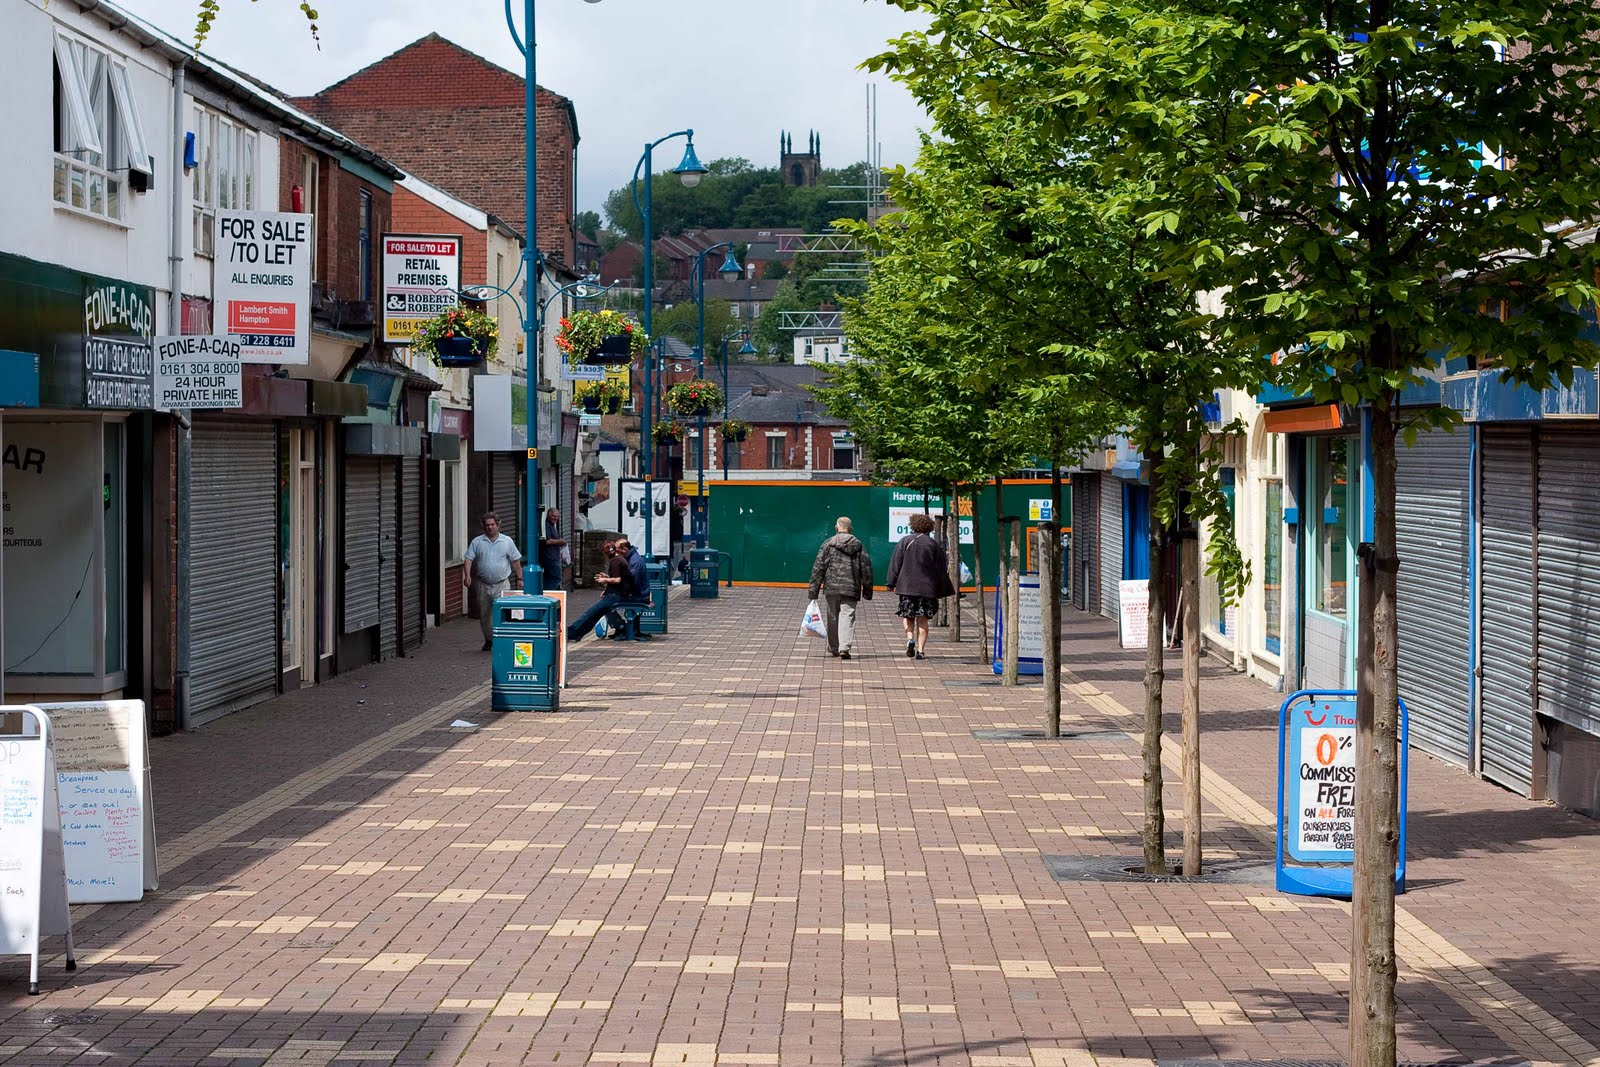 stalybridge, tameside